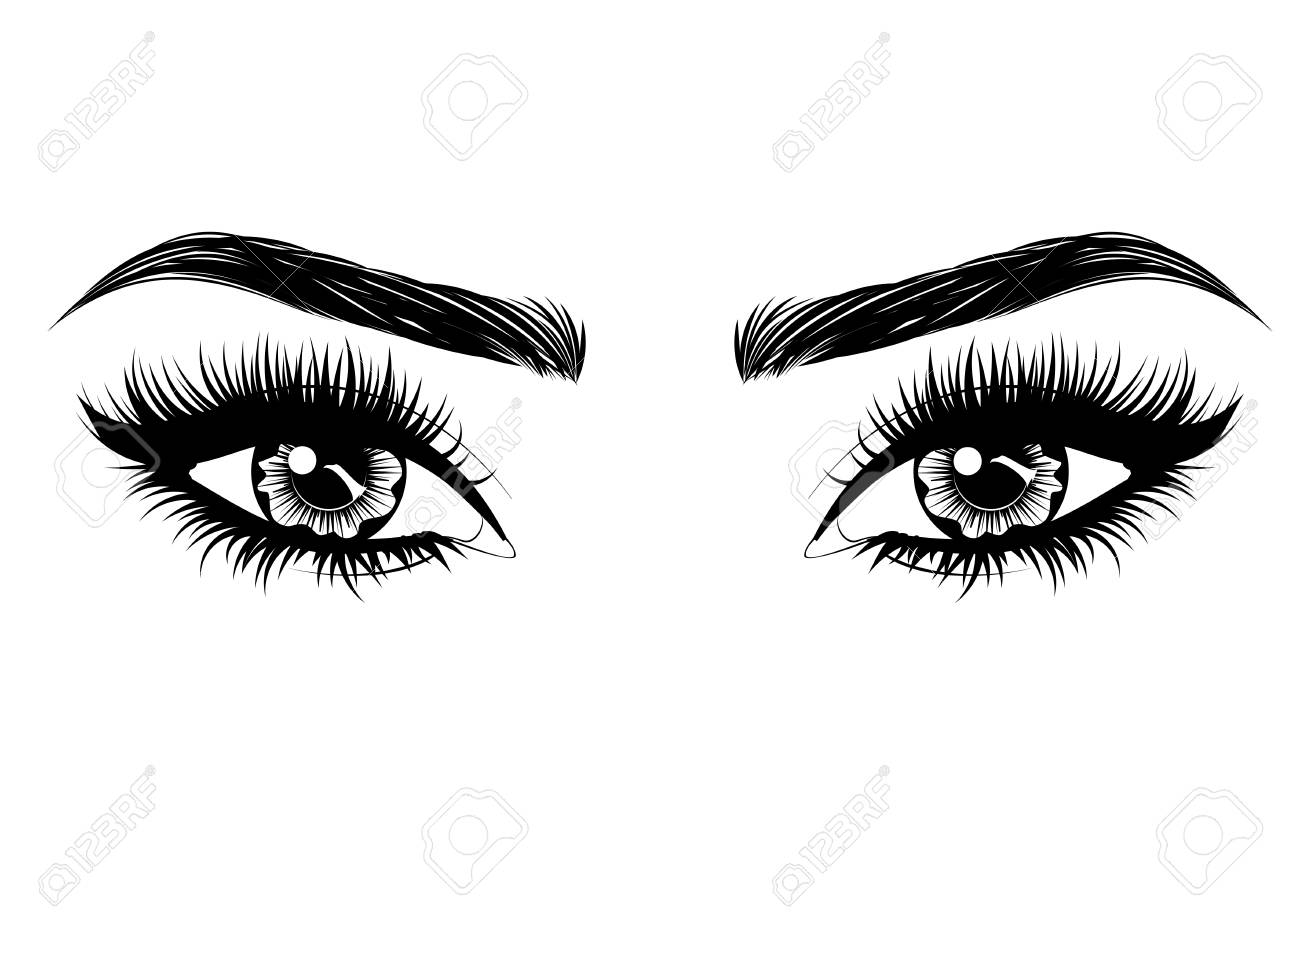 Female eyes with long black eyelashes and thick brows on white